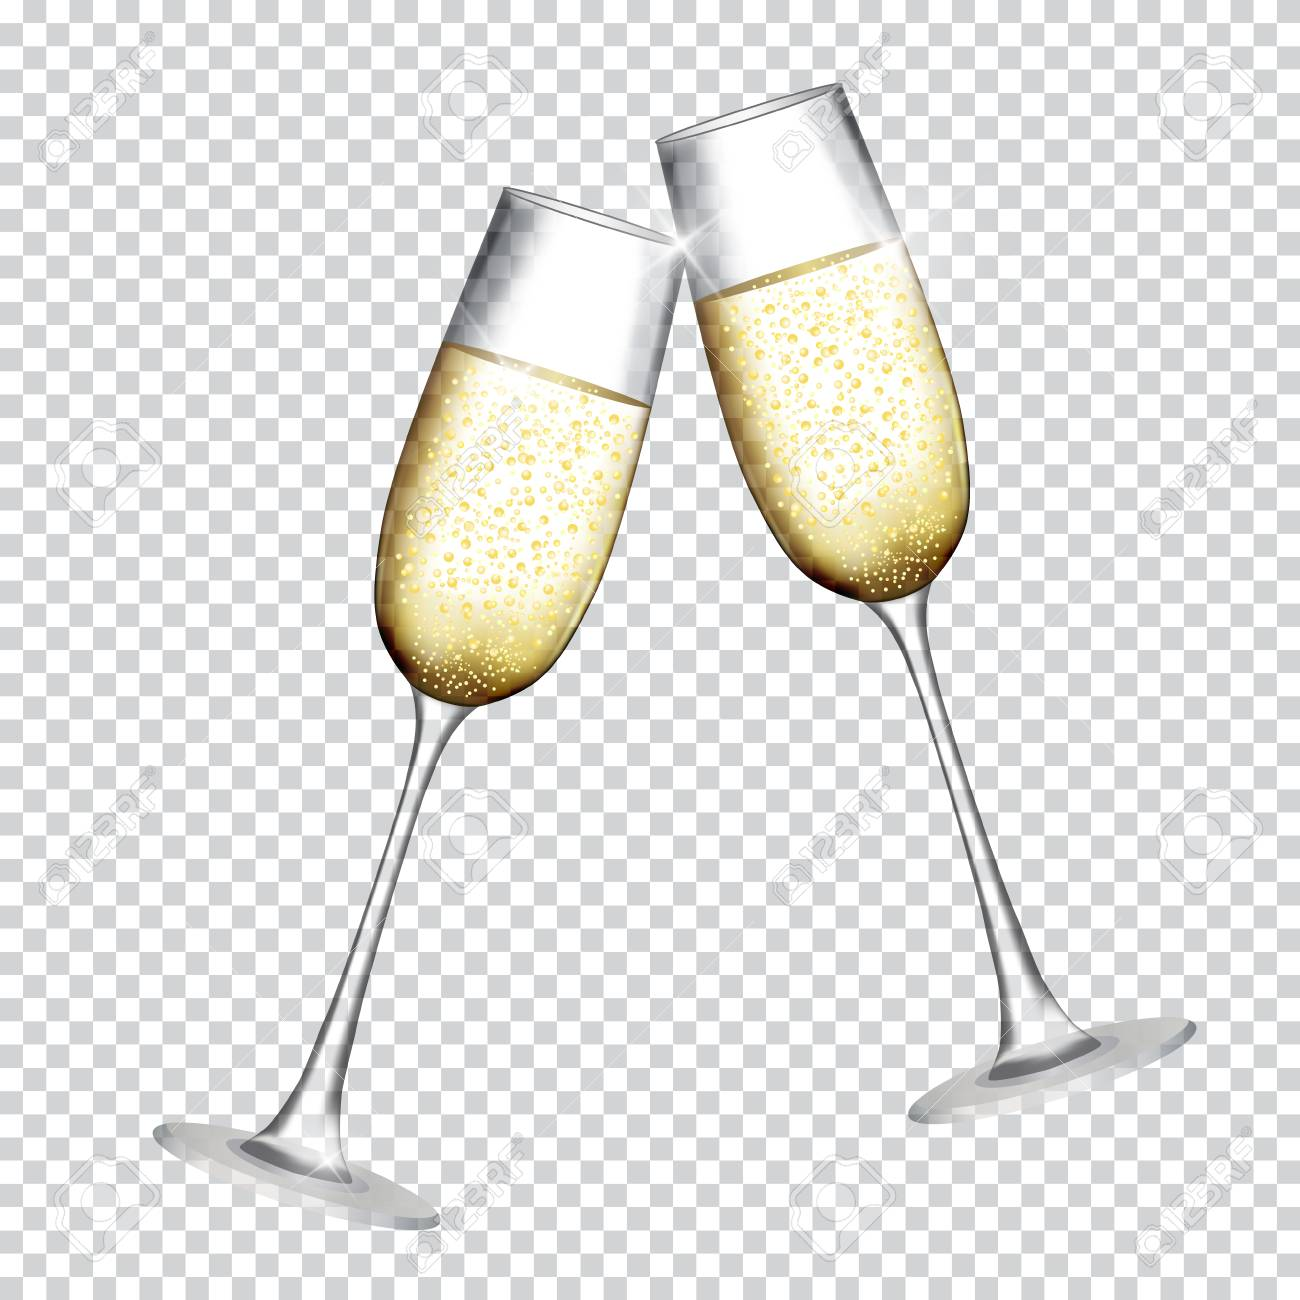 Champaine clipart graphic royalty free stock 102+ Champagne Clipart   ClipartLook graphic royalty free stock